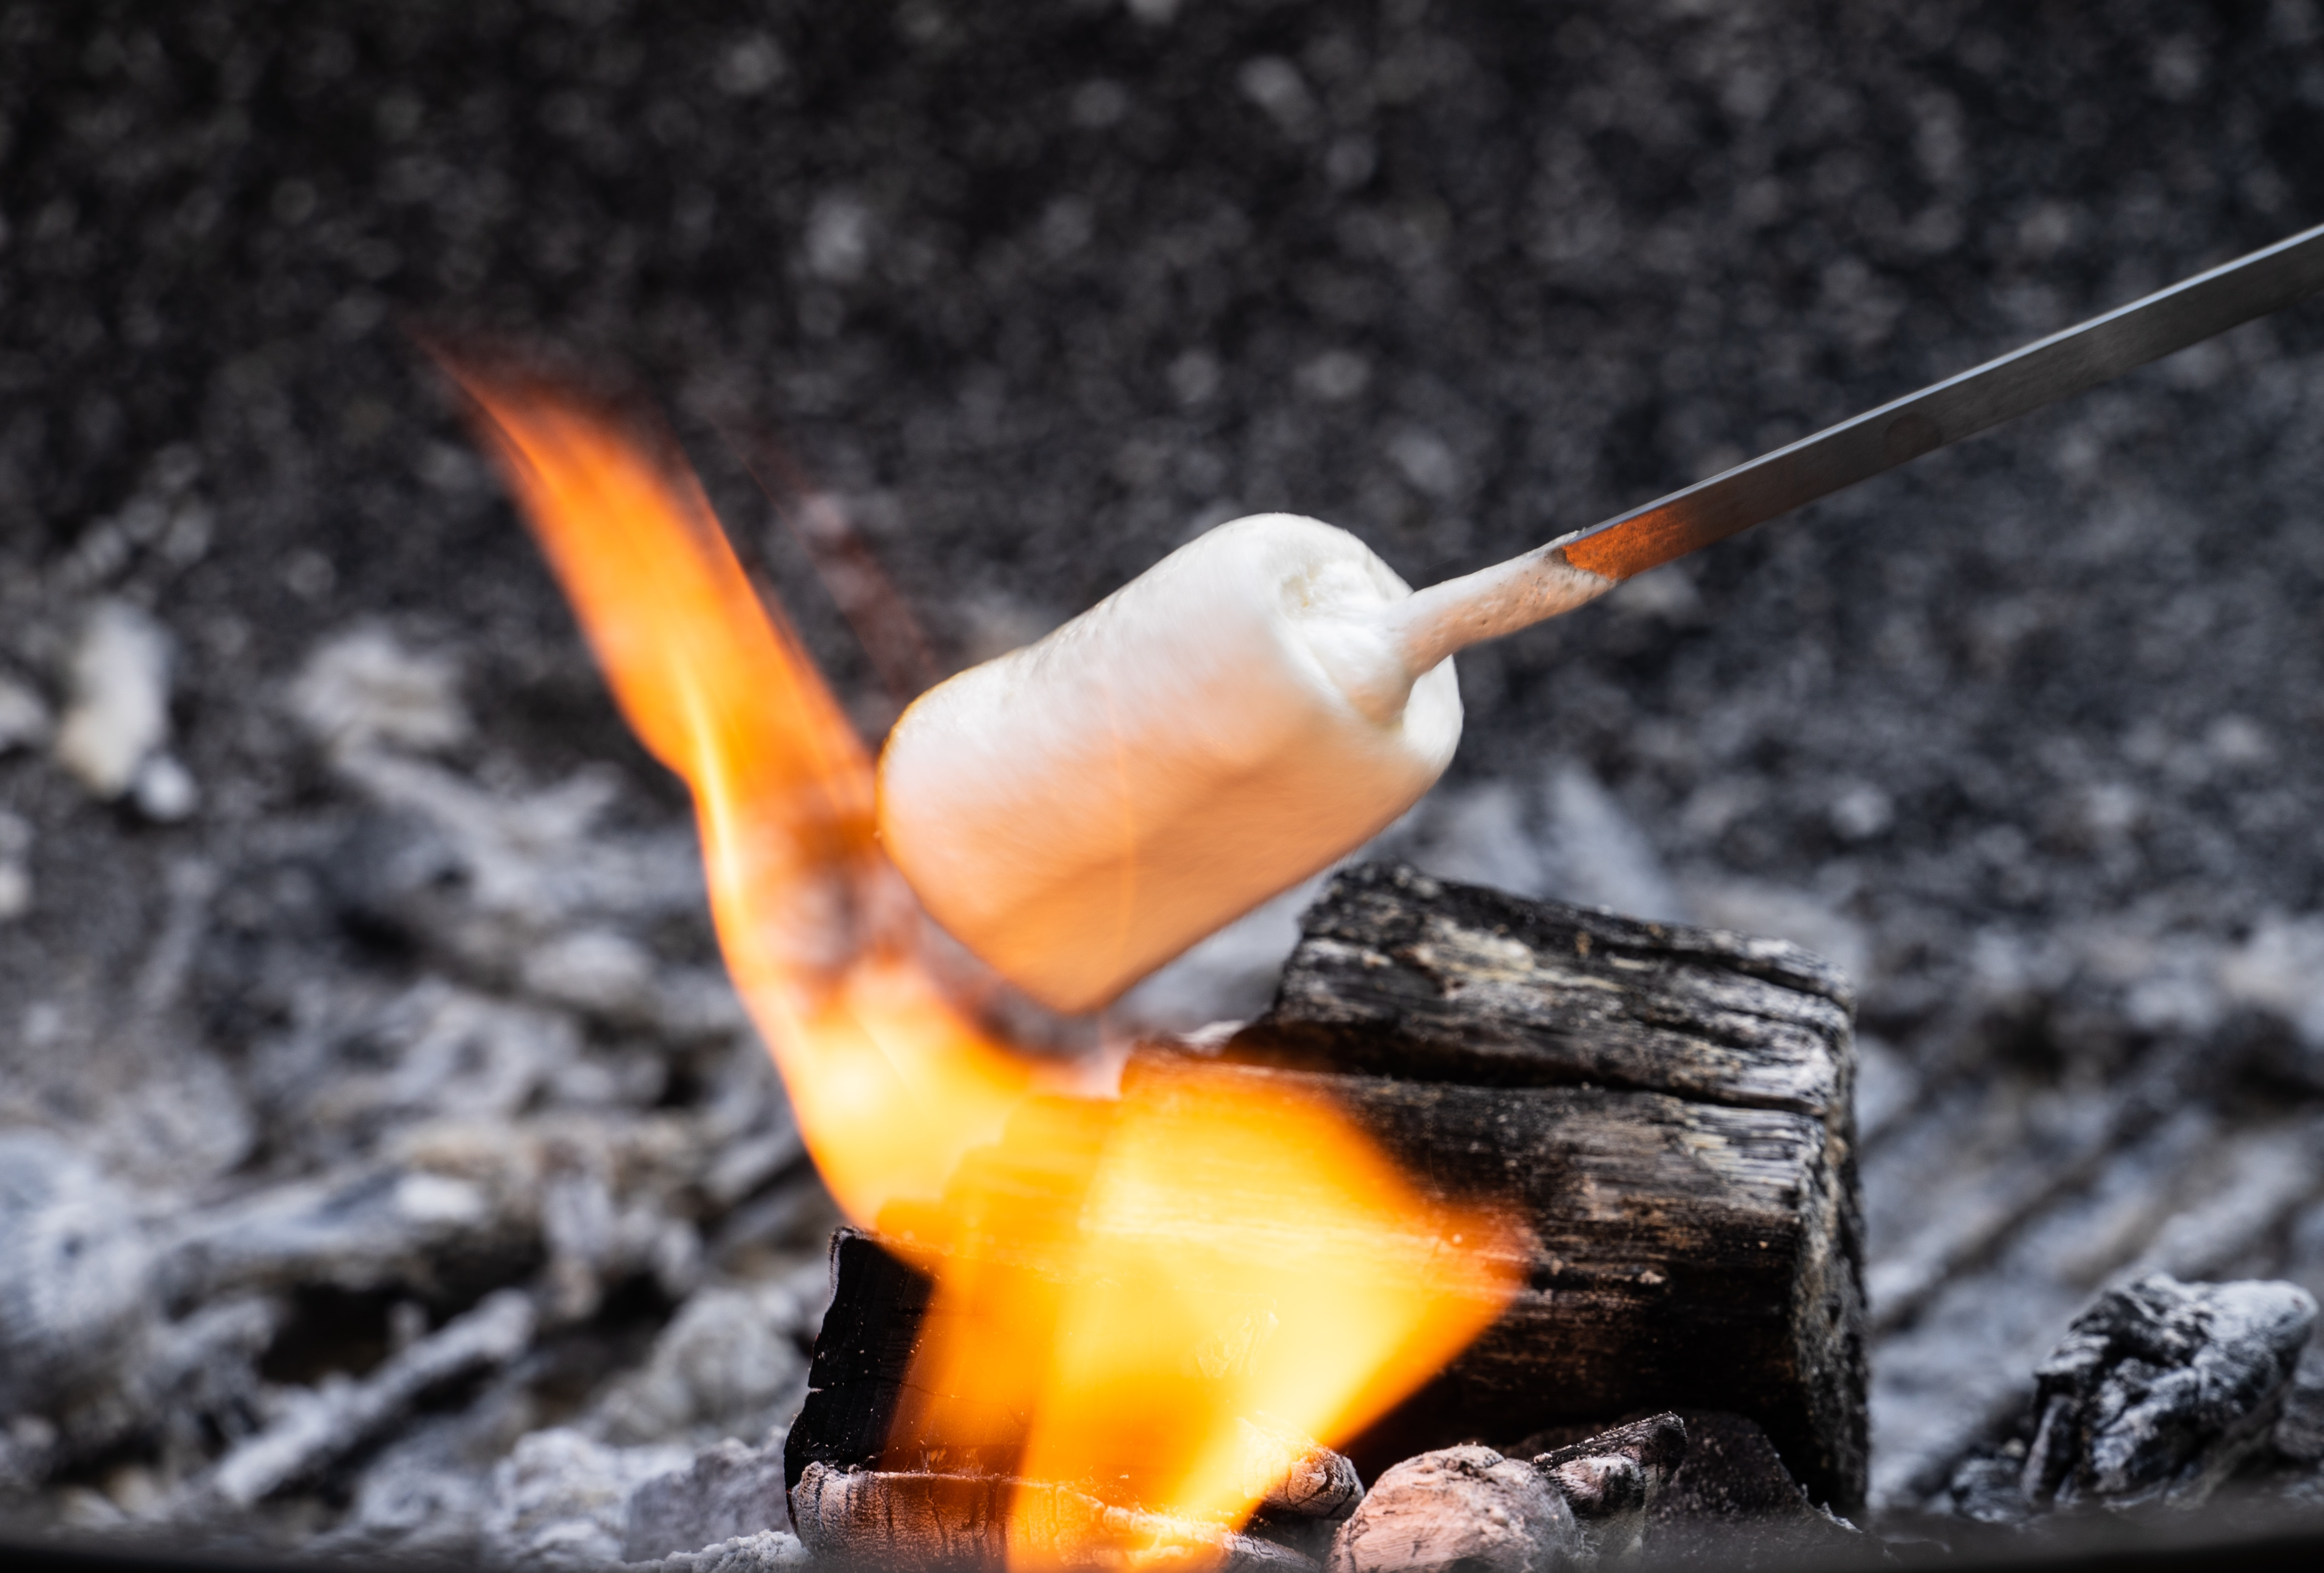 closeup photography of burning skewered marshmallow